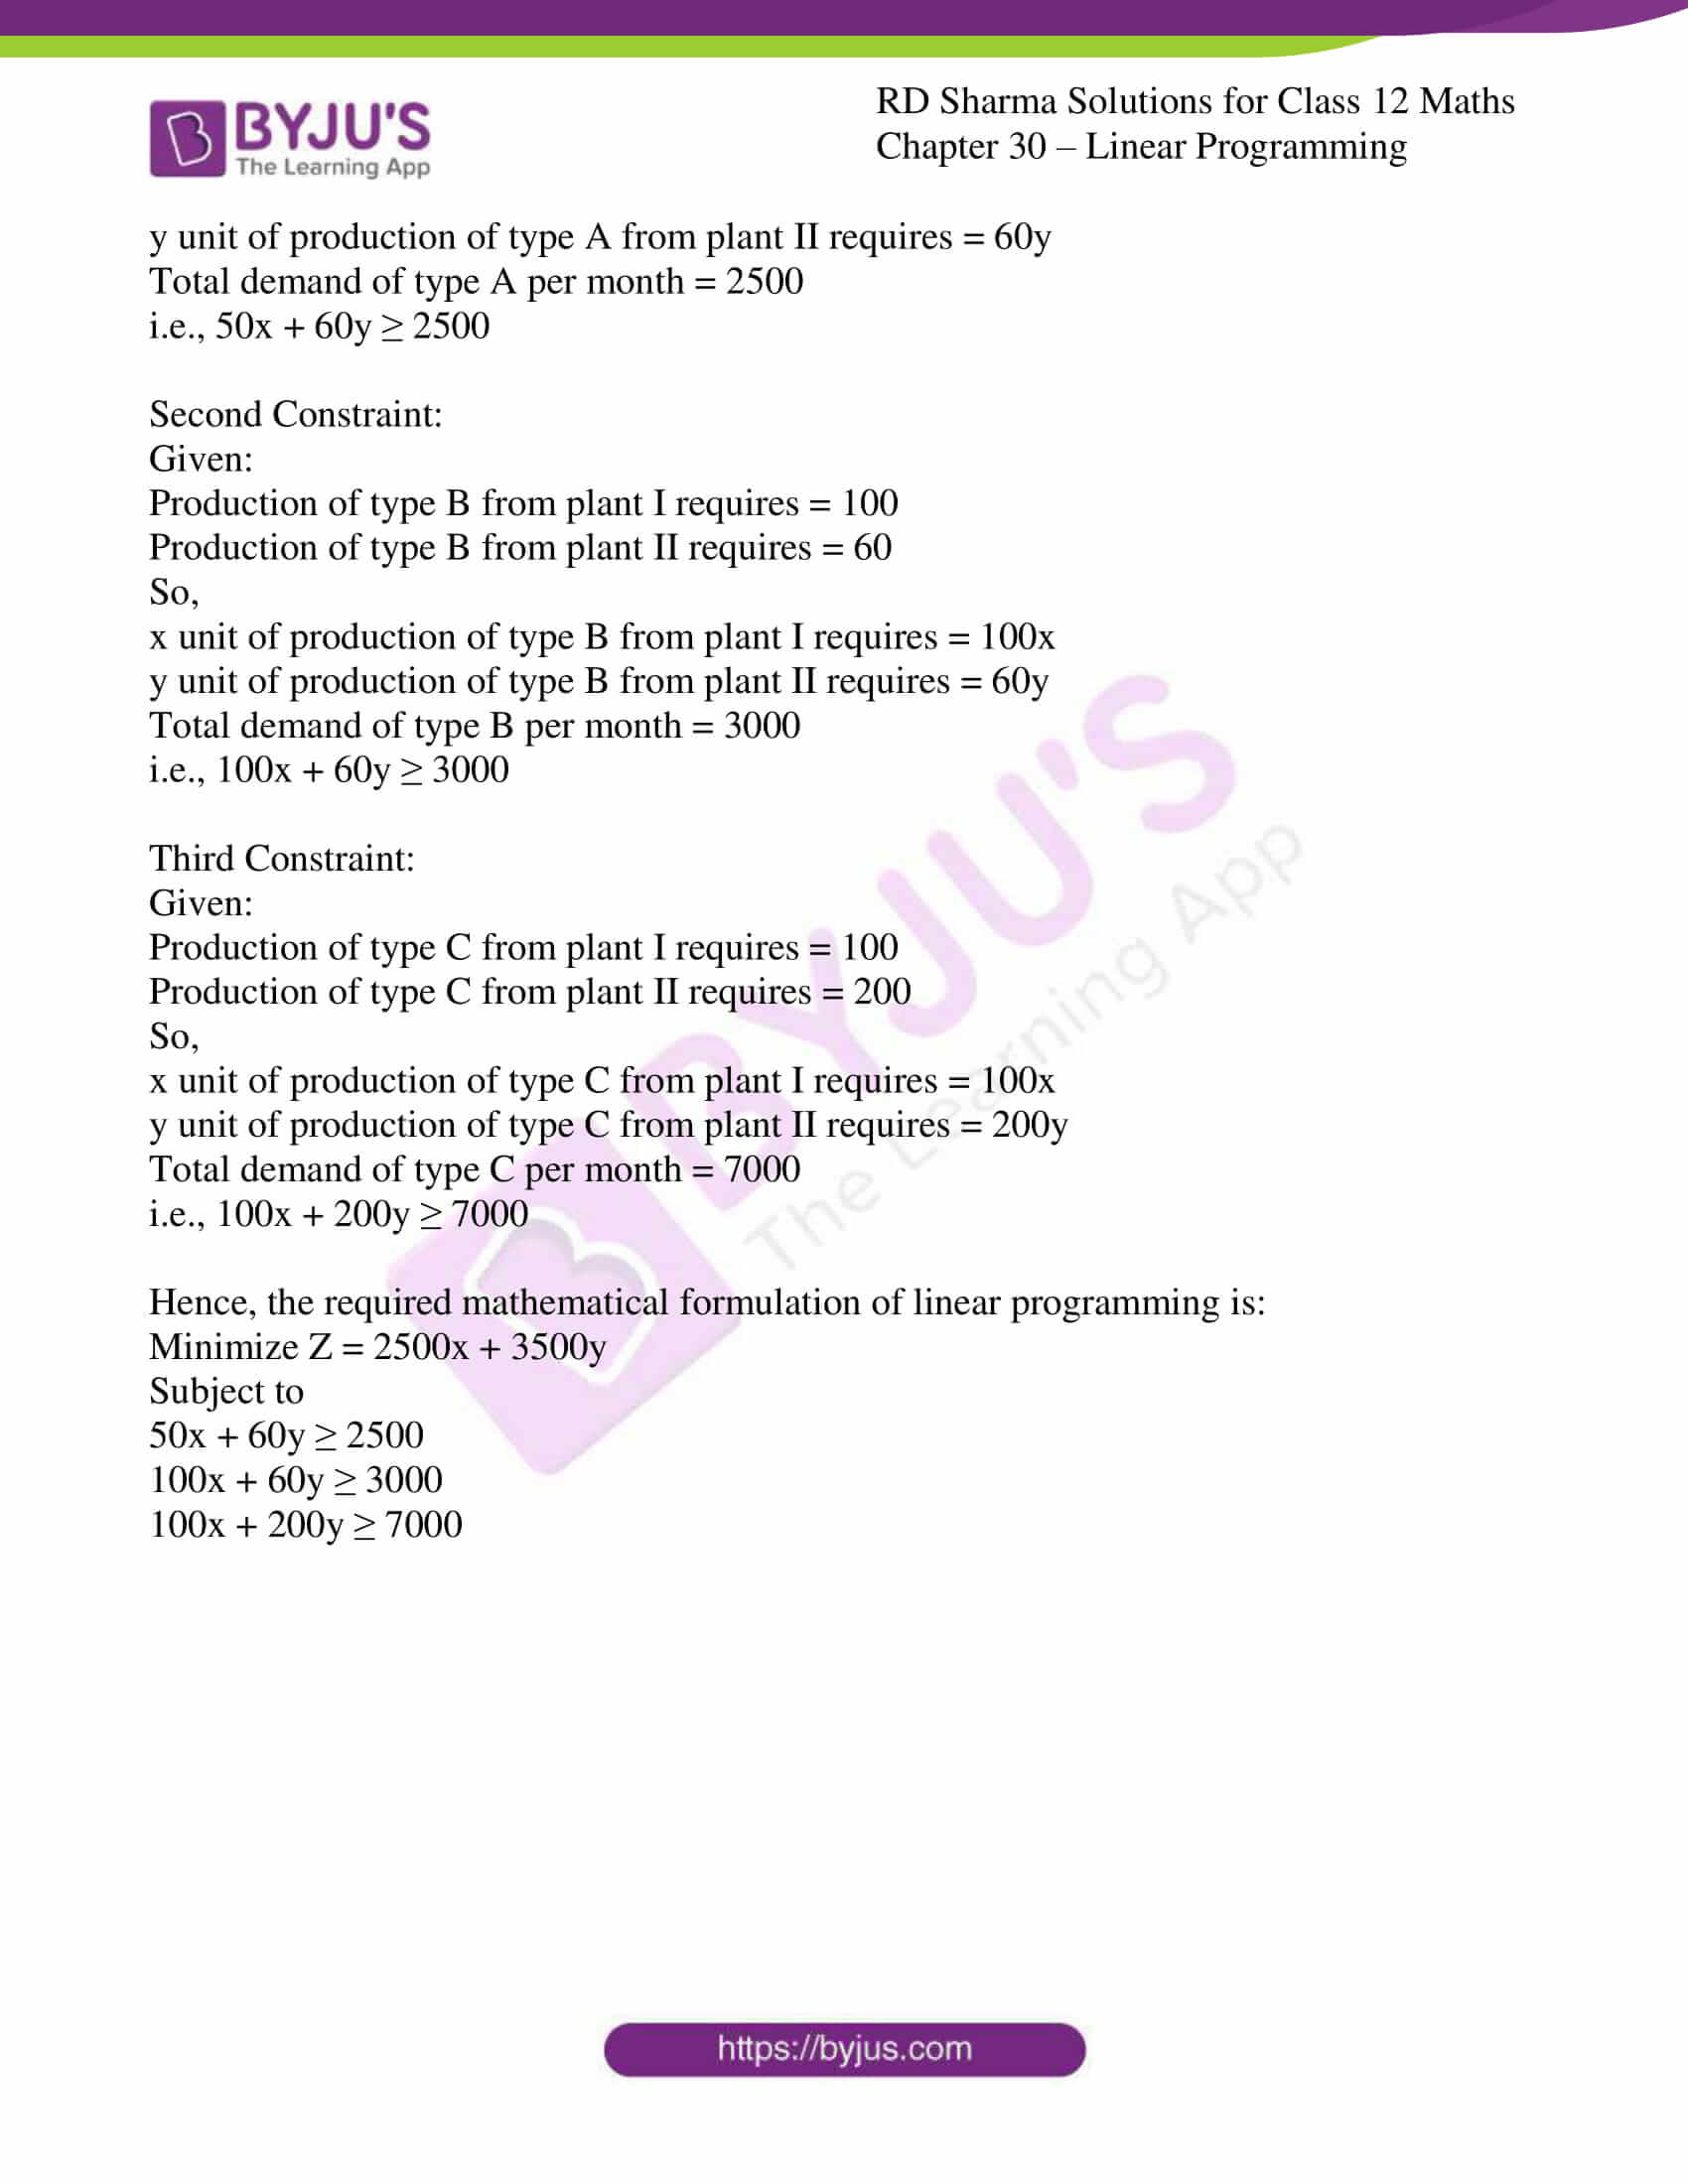 rd sharma solutions for class 12 maths chapter 30 ex 1 7